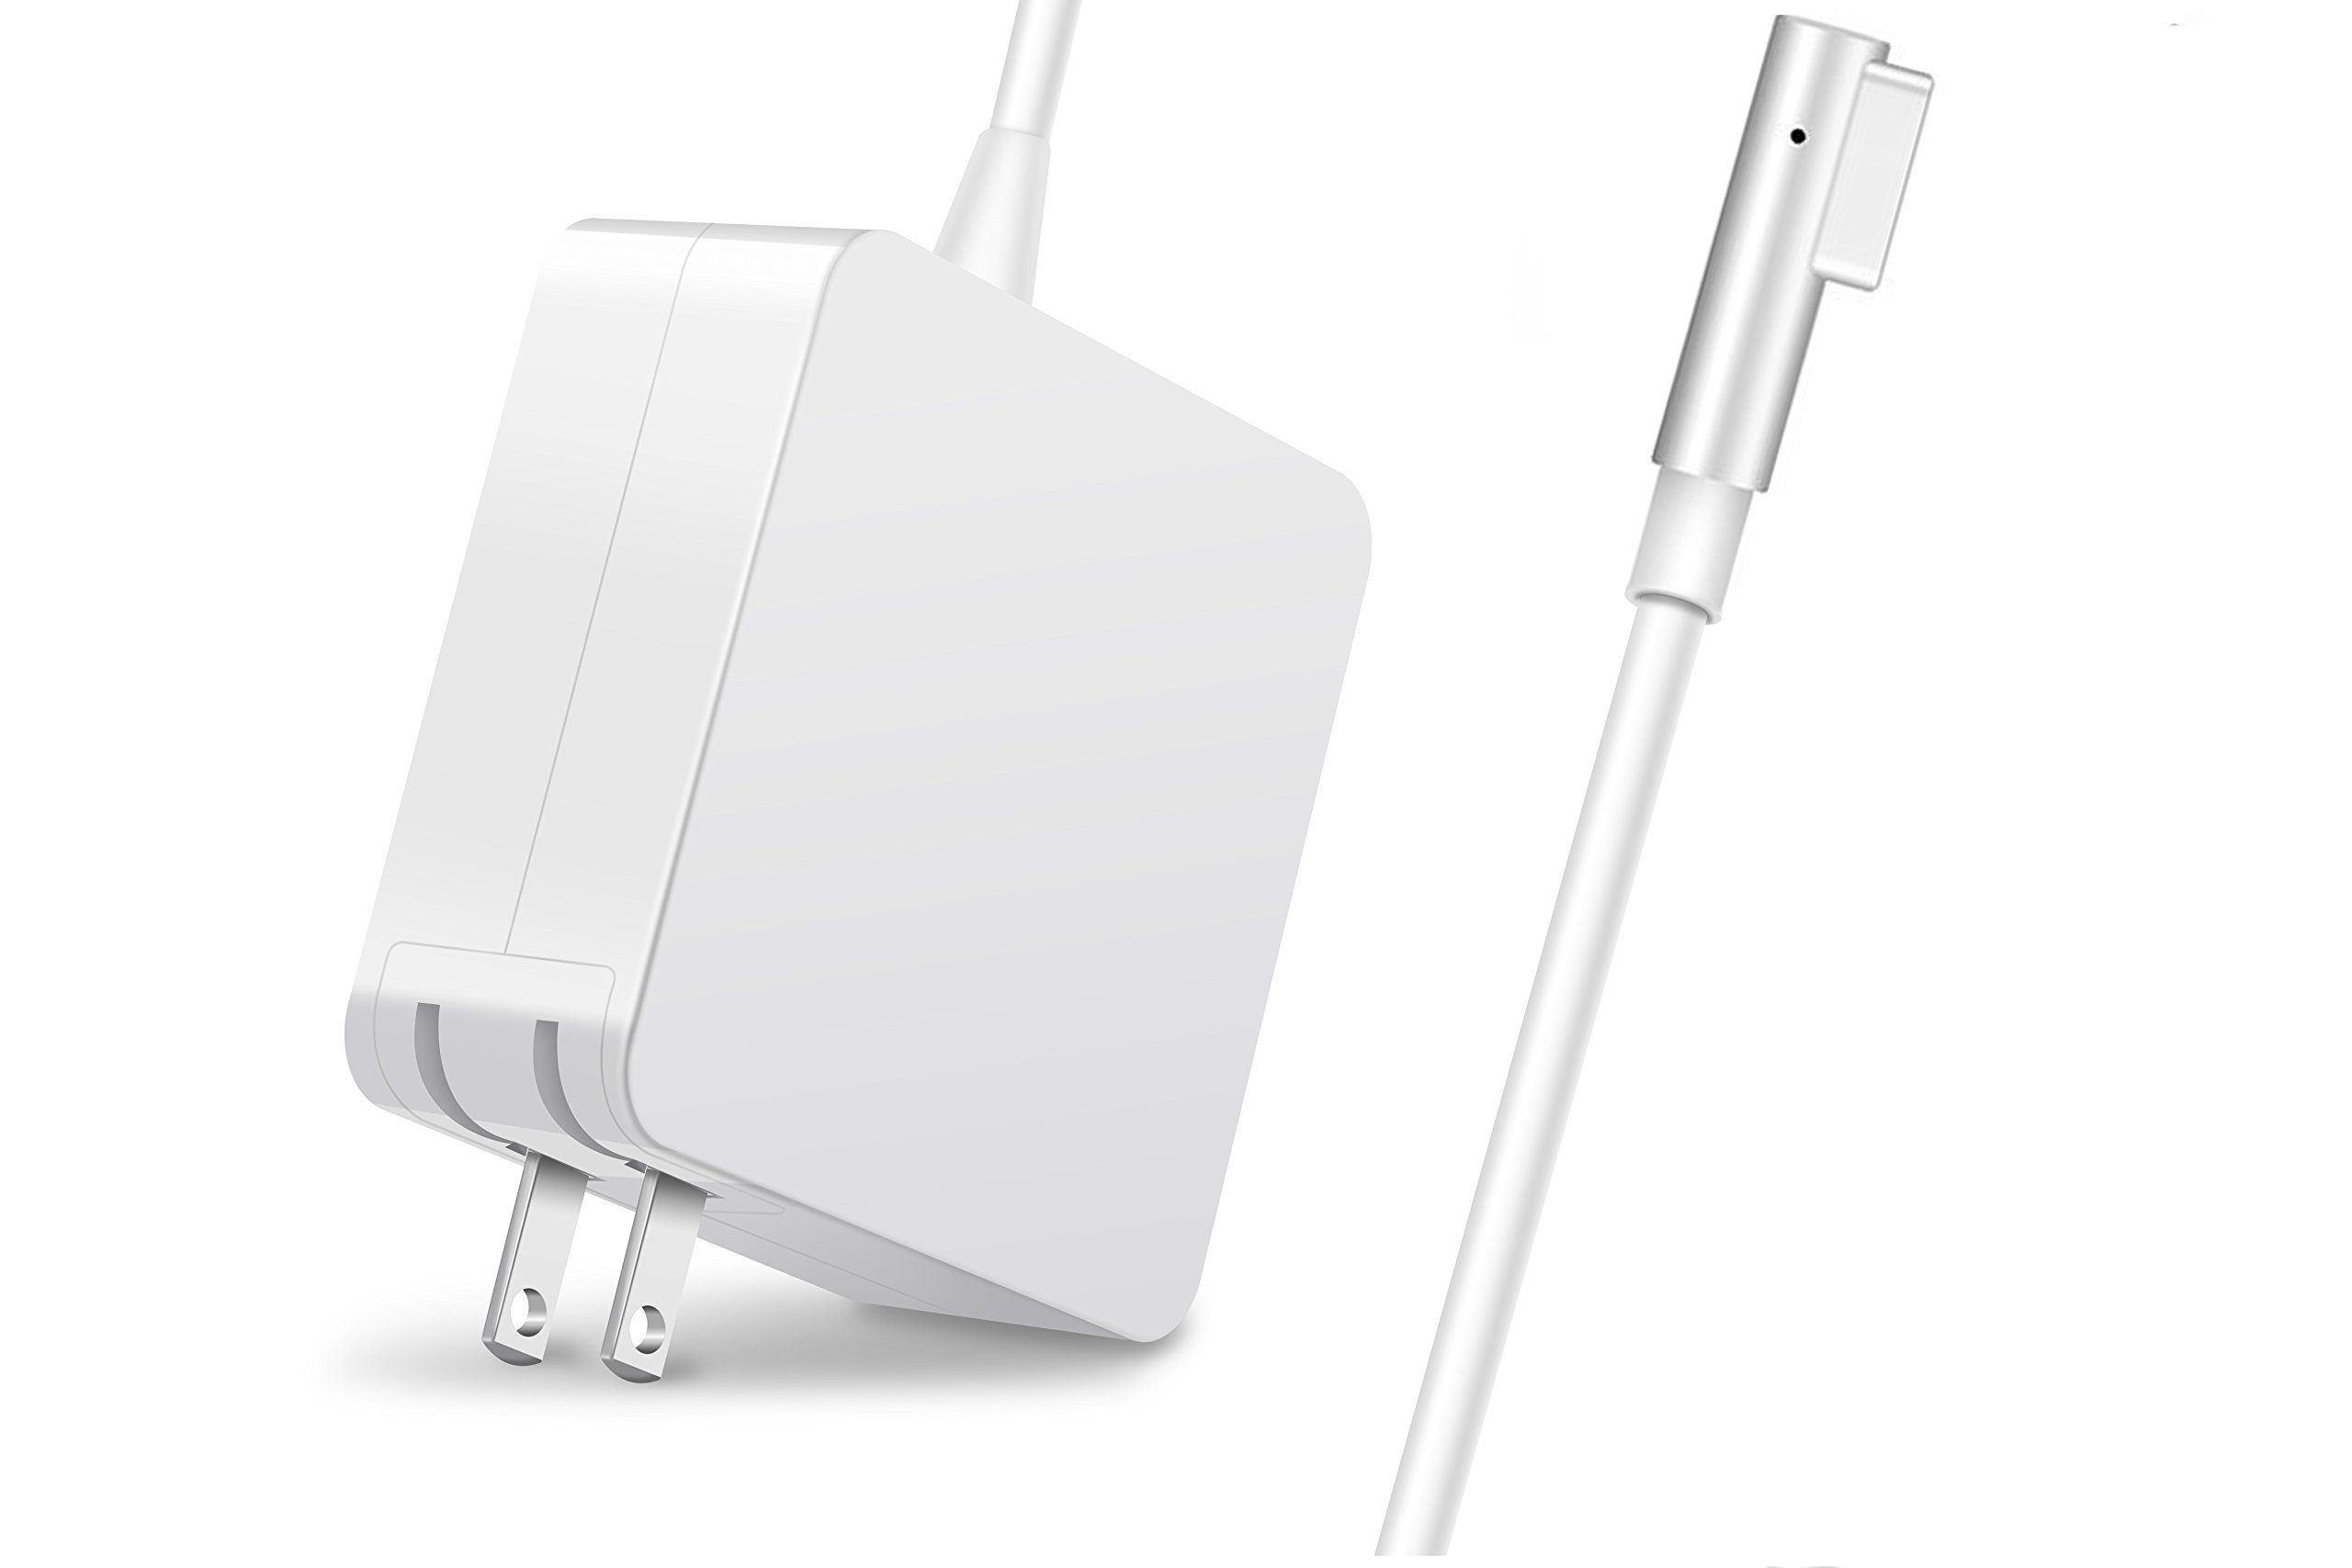 GSNOW Macbook Pro Charger – 60W L-Tip Magsafe Power Adapter for Apple Macbook Pro 13-inch – Before Mid 2012